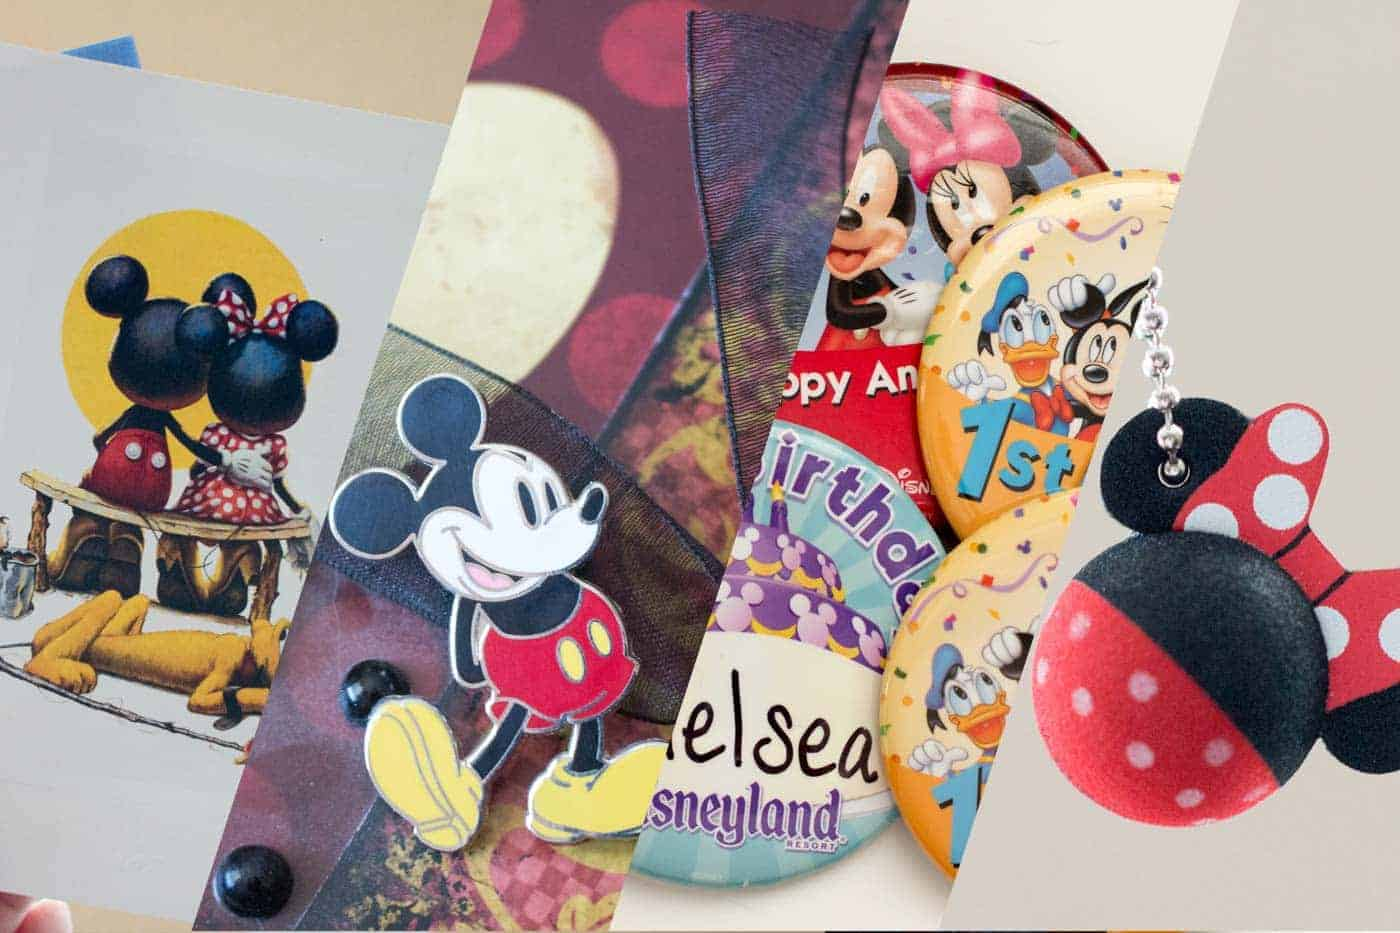 Best Cheap Disneyland Souvenirs for Scrapbooking | LovePaperCrafts.com